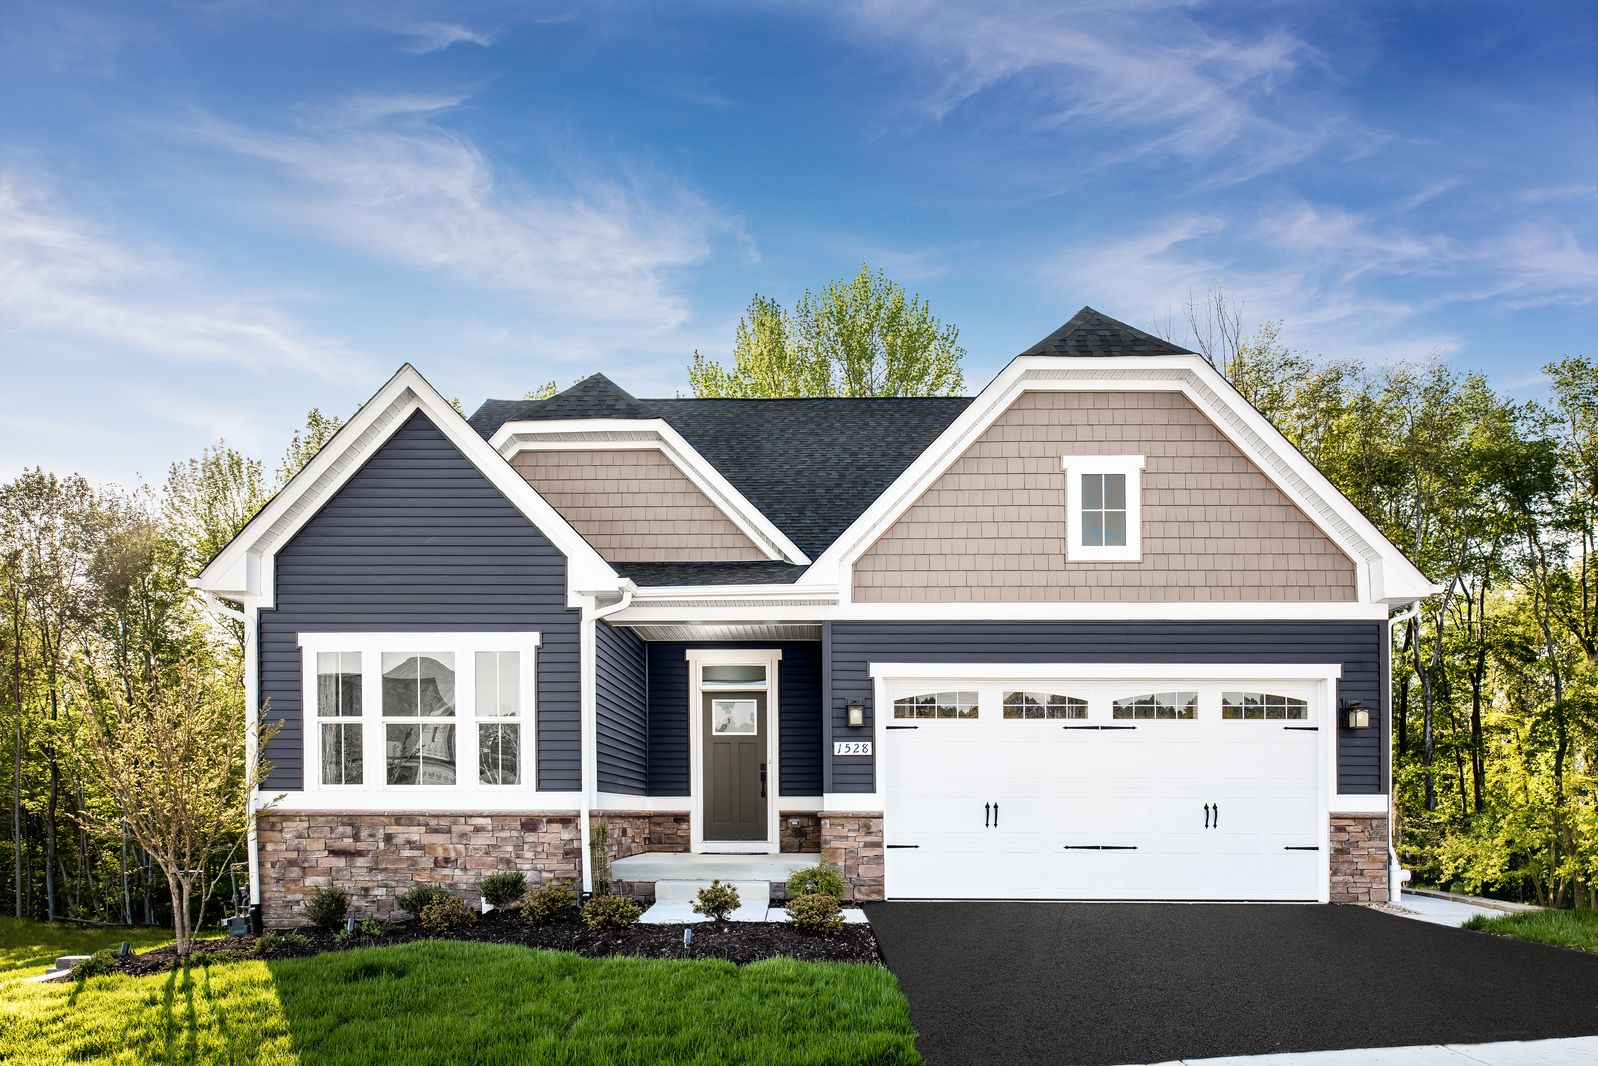 Welcome home to Highland Woods - New Ranch Homes in Elgin:Lawn care & snow removal included and fences allowed! Located in an amenity filled community. Basement options and 2nd level bonus areas available.Click here to schedule your visit!